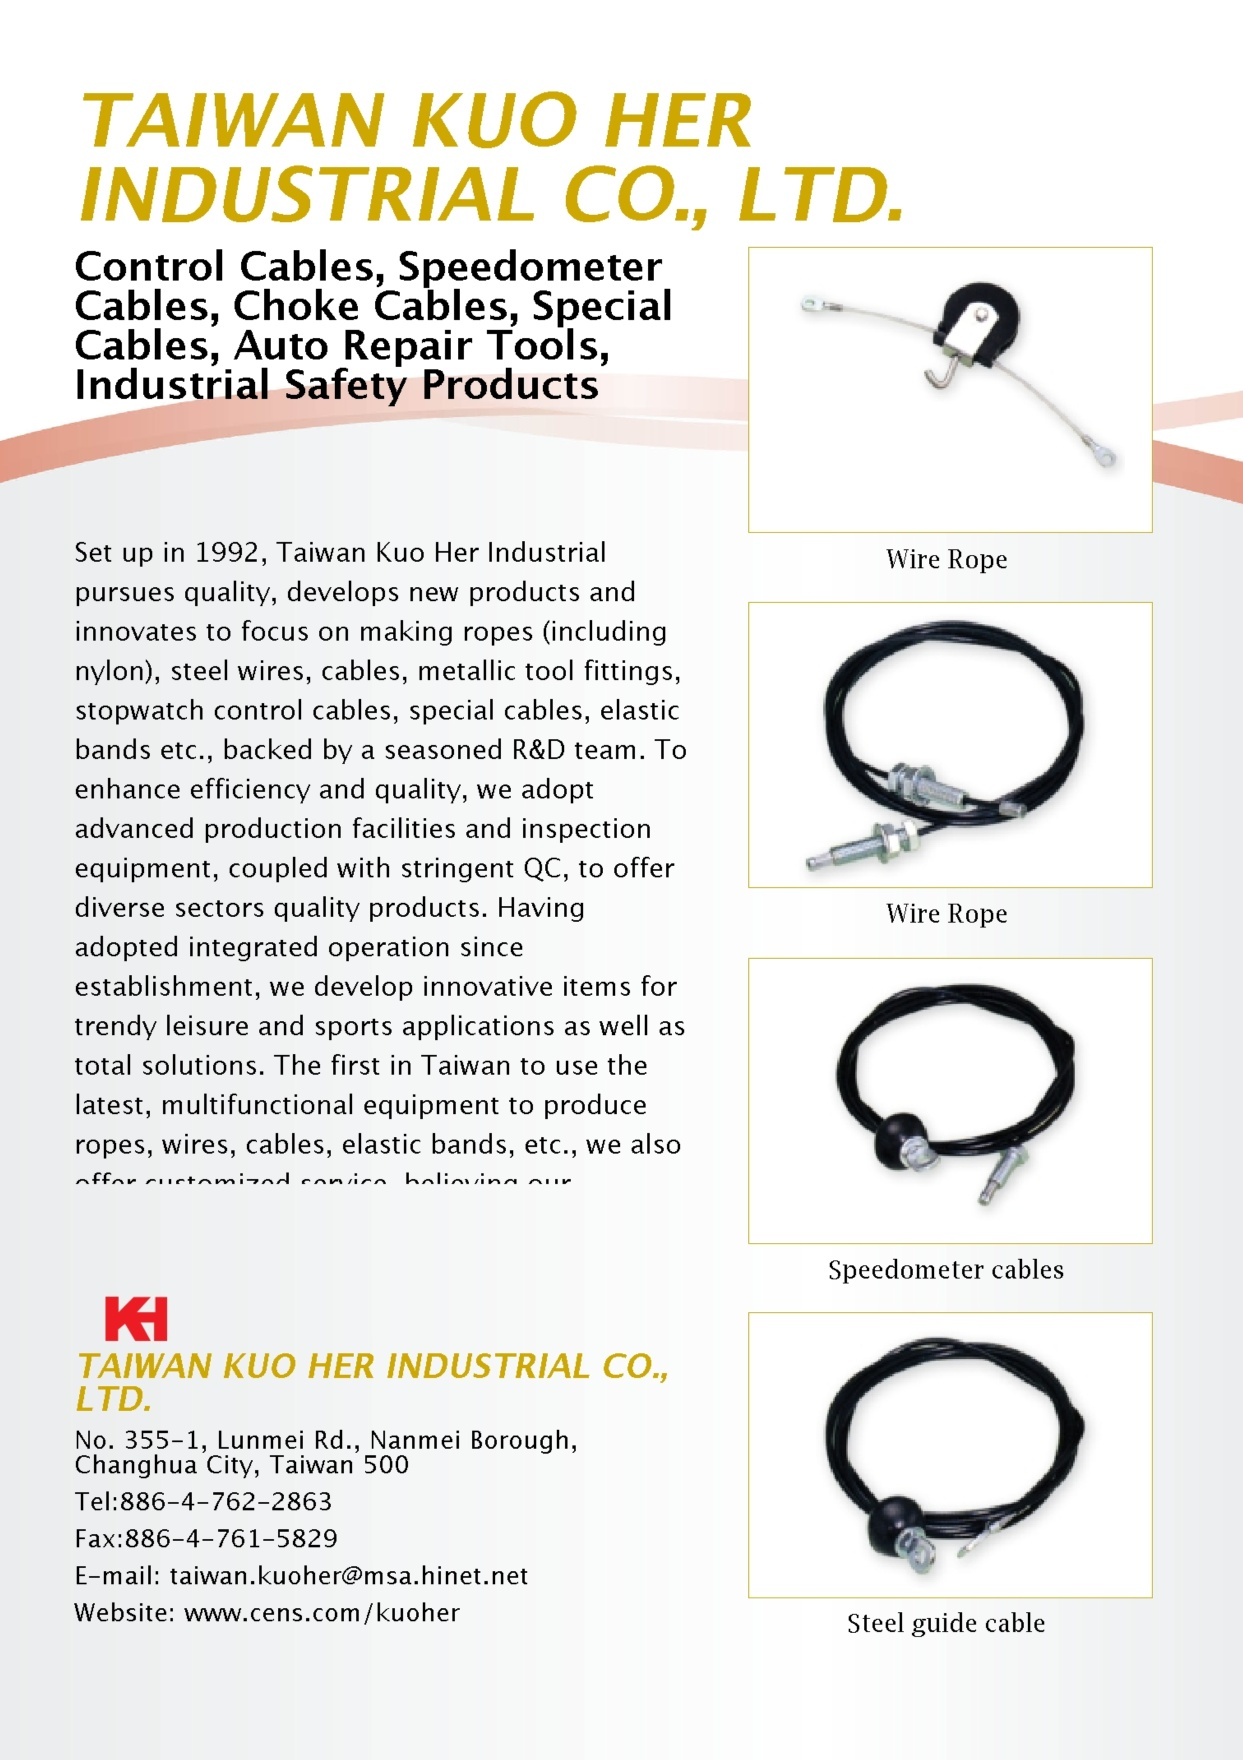 TAIWAN KUO HER INDUSTRIAL CO., LTD.